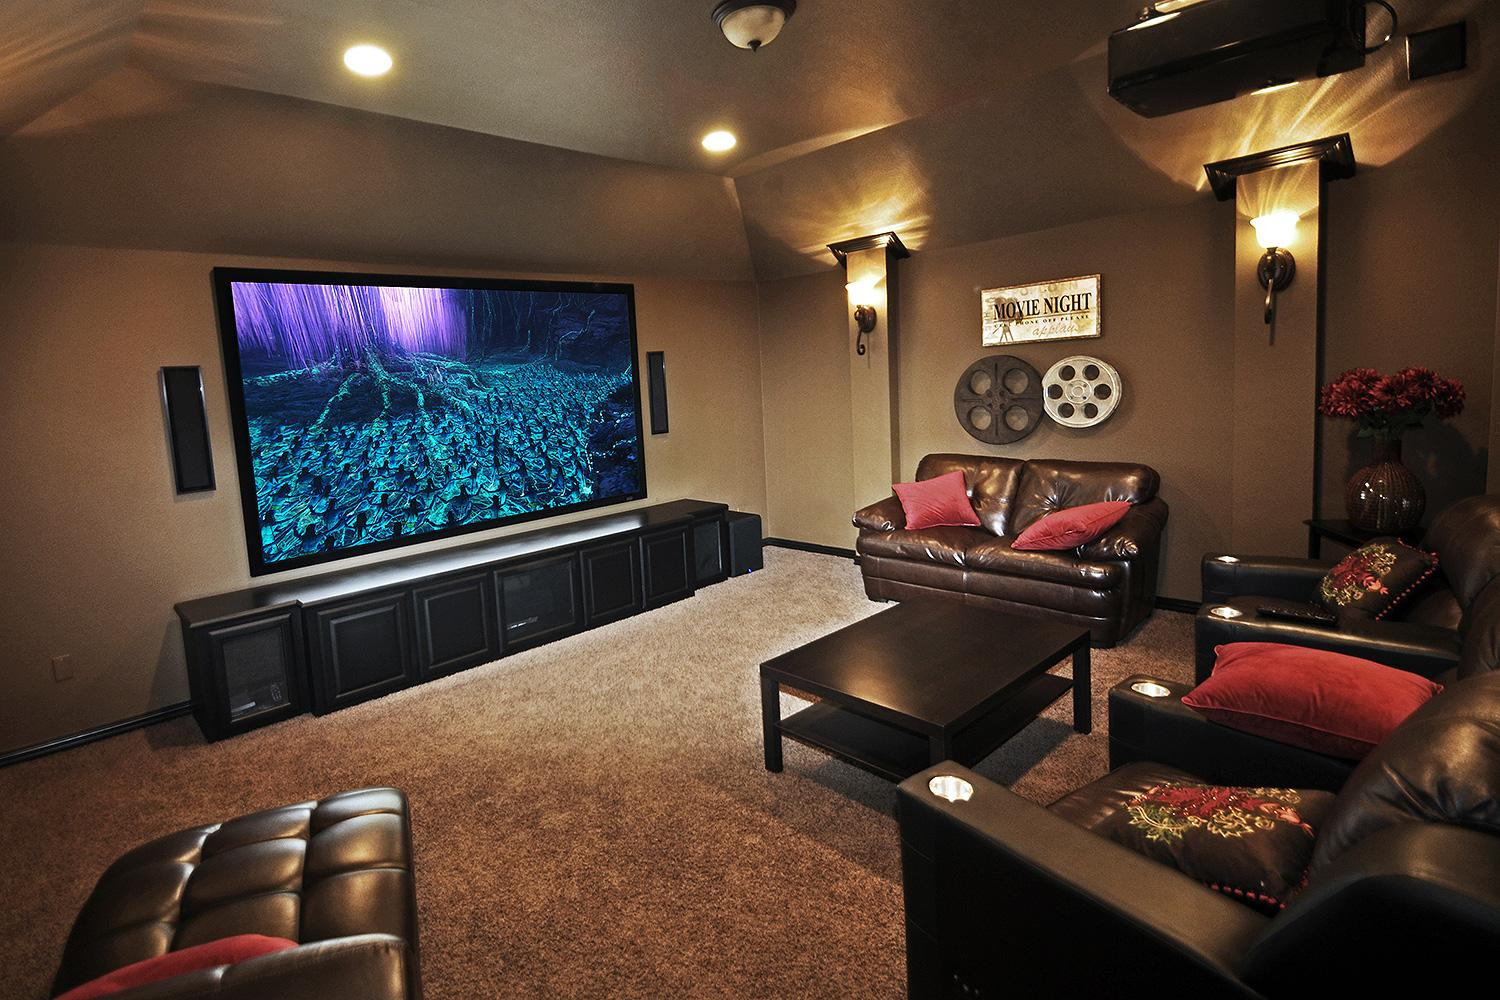 how to build a 3d home theater for 3000 digital trends 3k home theater under 3000 k